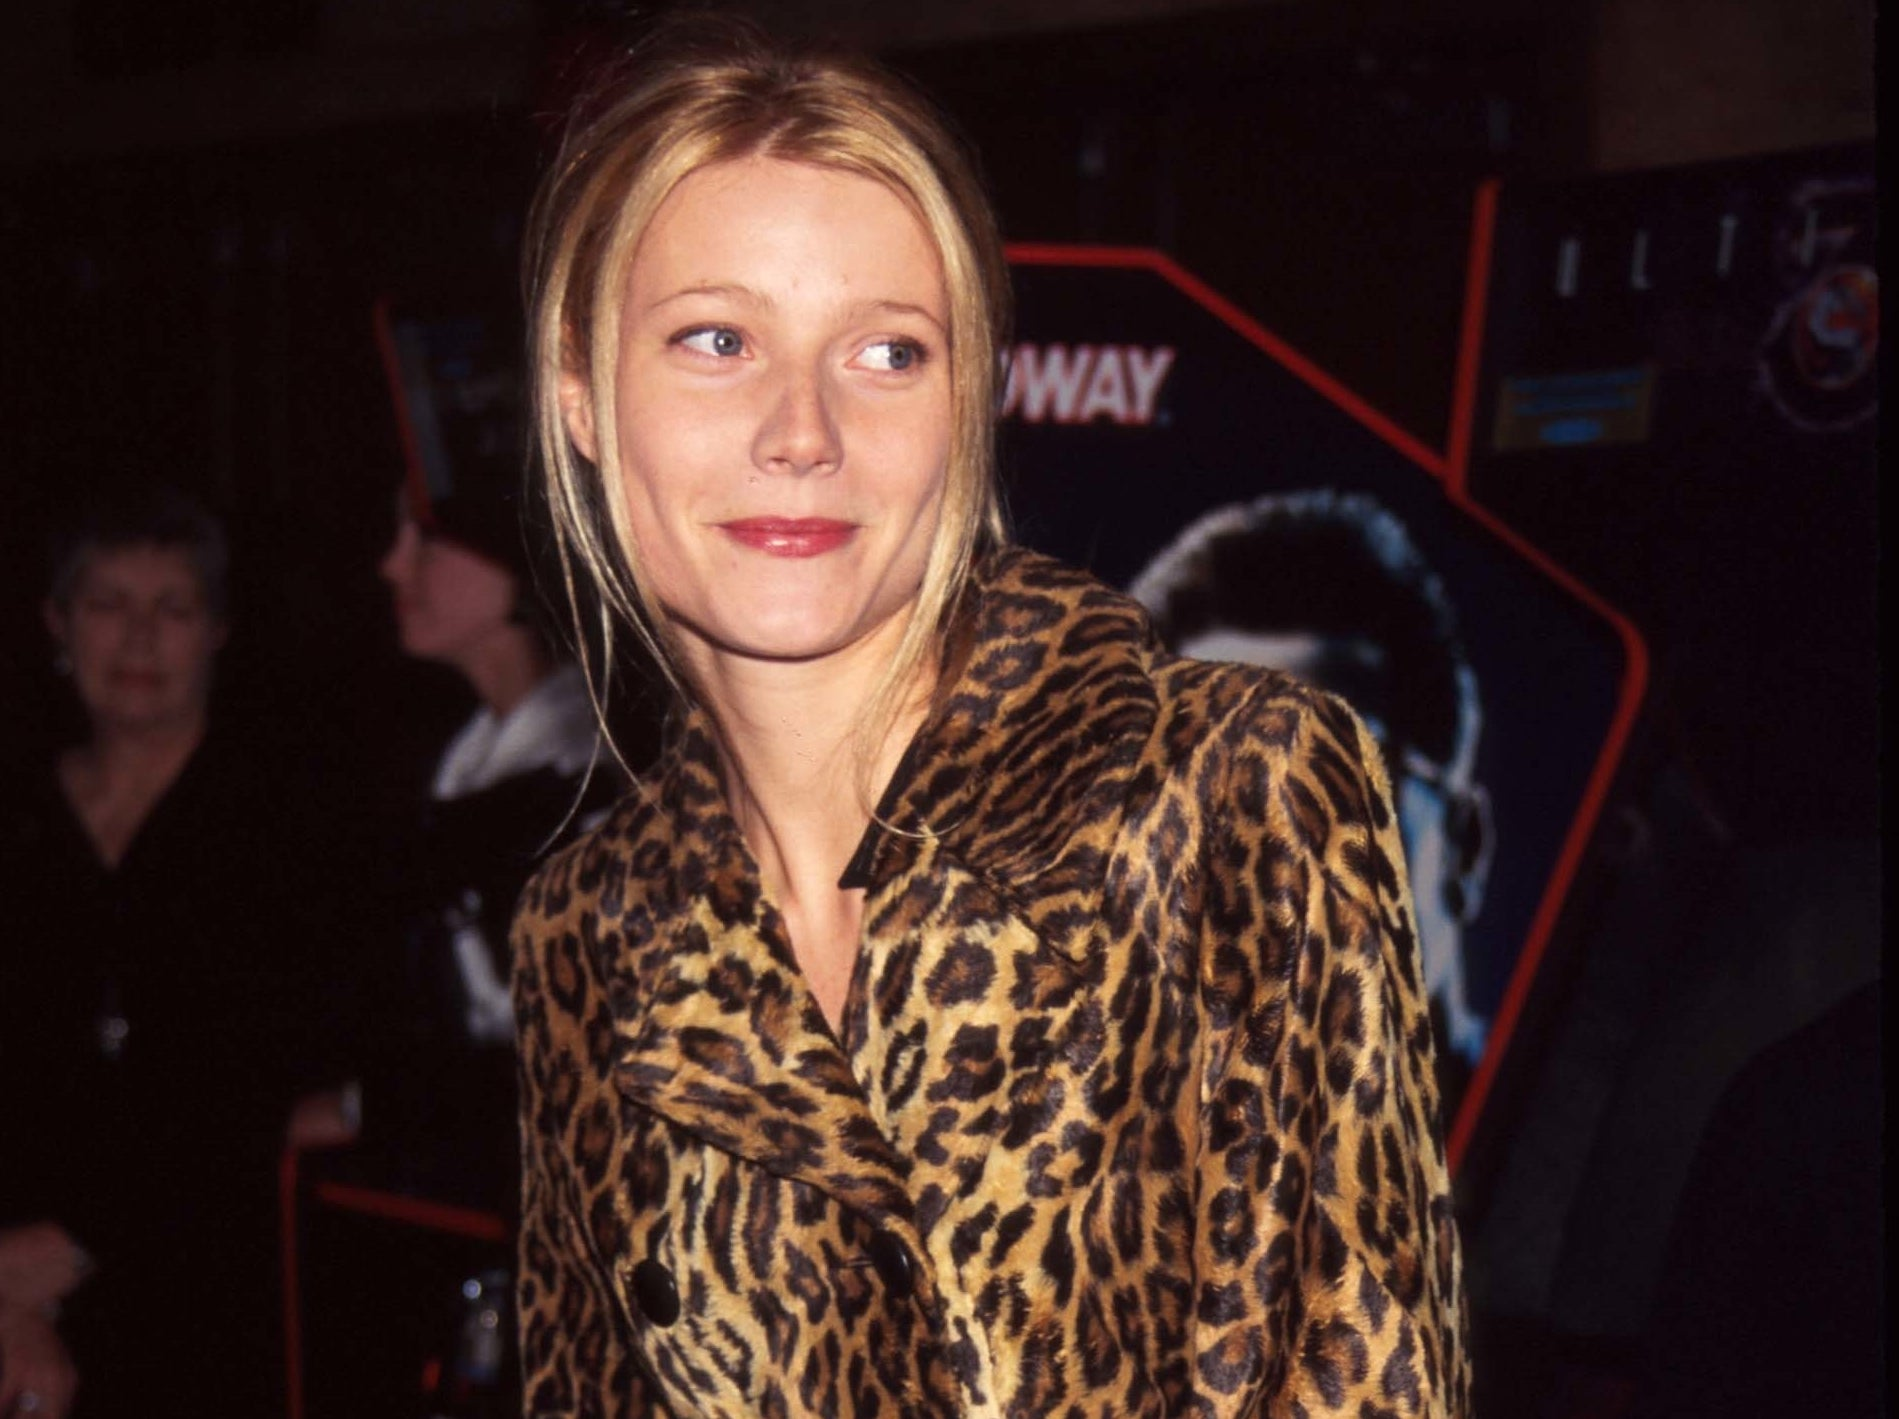 Gwyneth shyly looks away from the camera at an event in the early 2000s